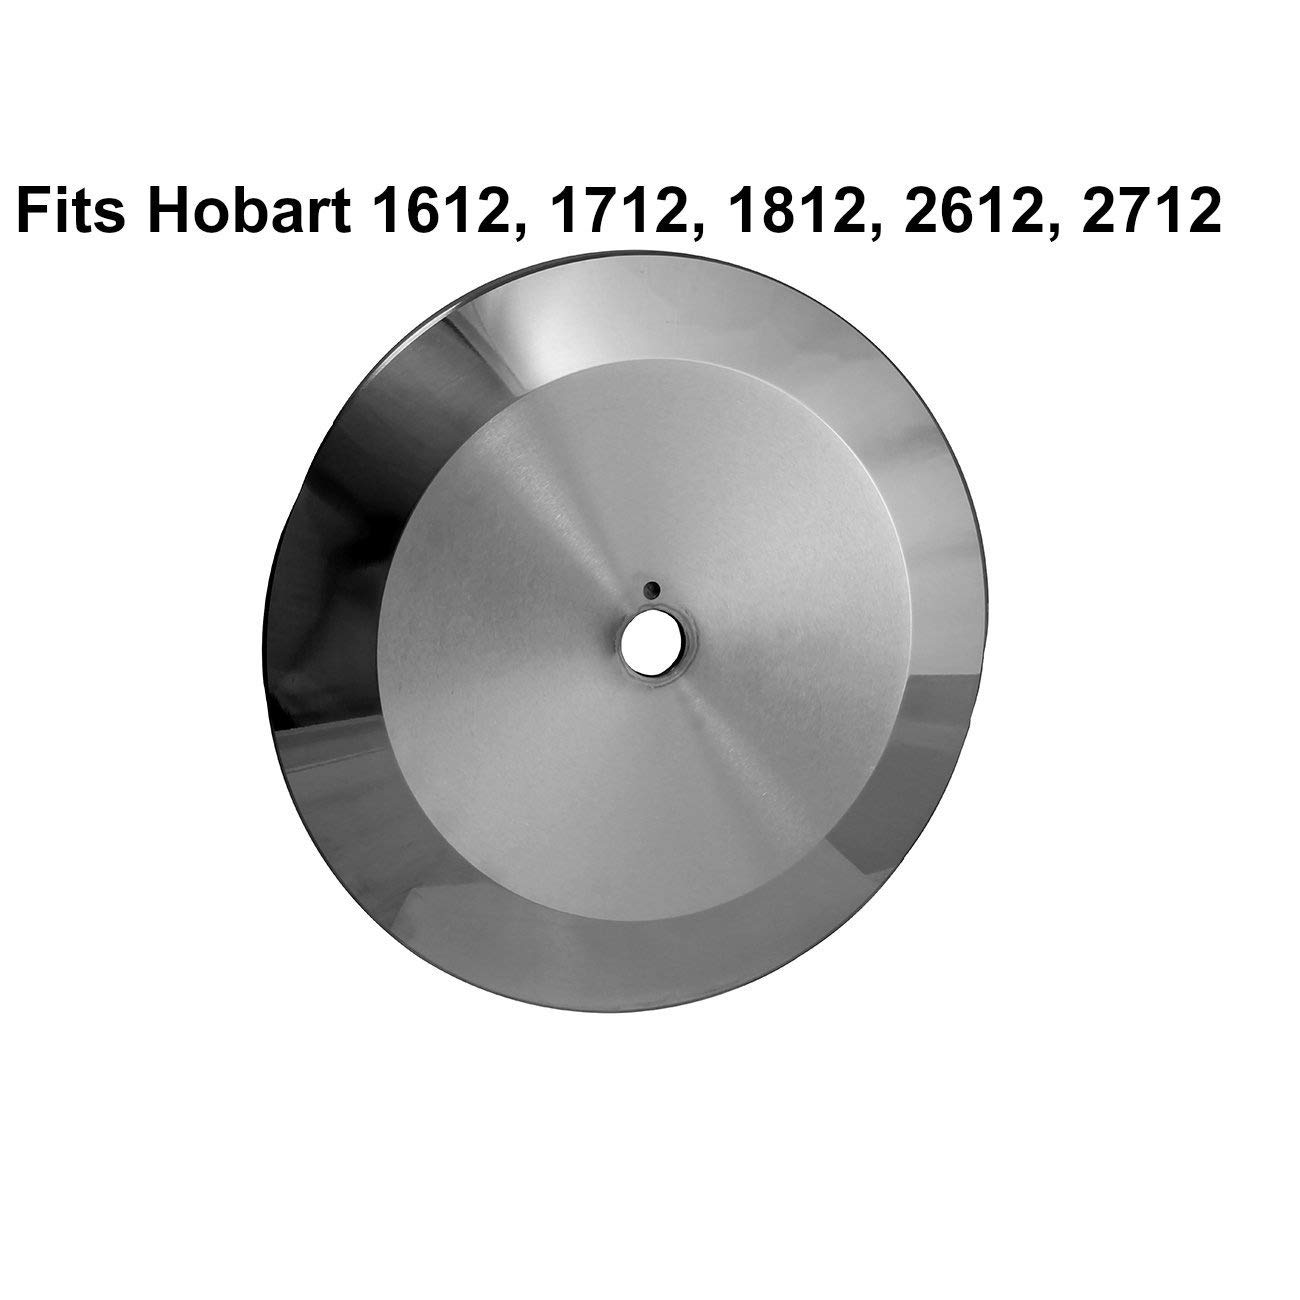 Hobart Replacement Blade Meat / Deli Slicer Fits 1612, 1712, 1812, 2612, 2712